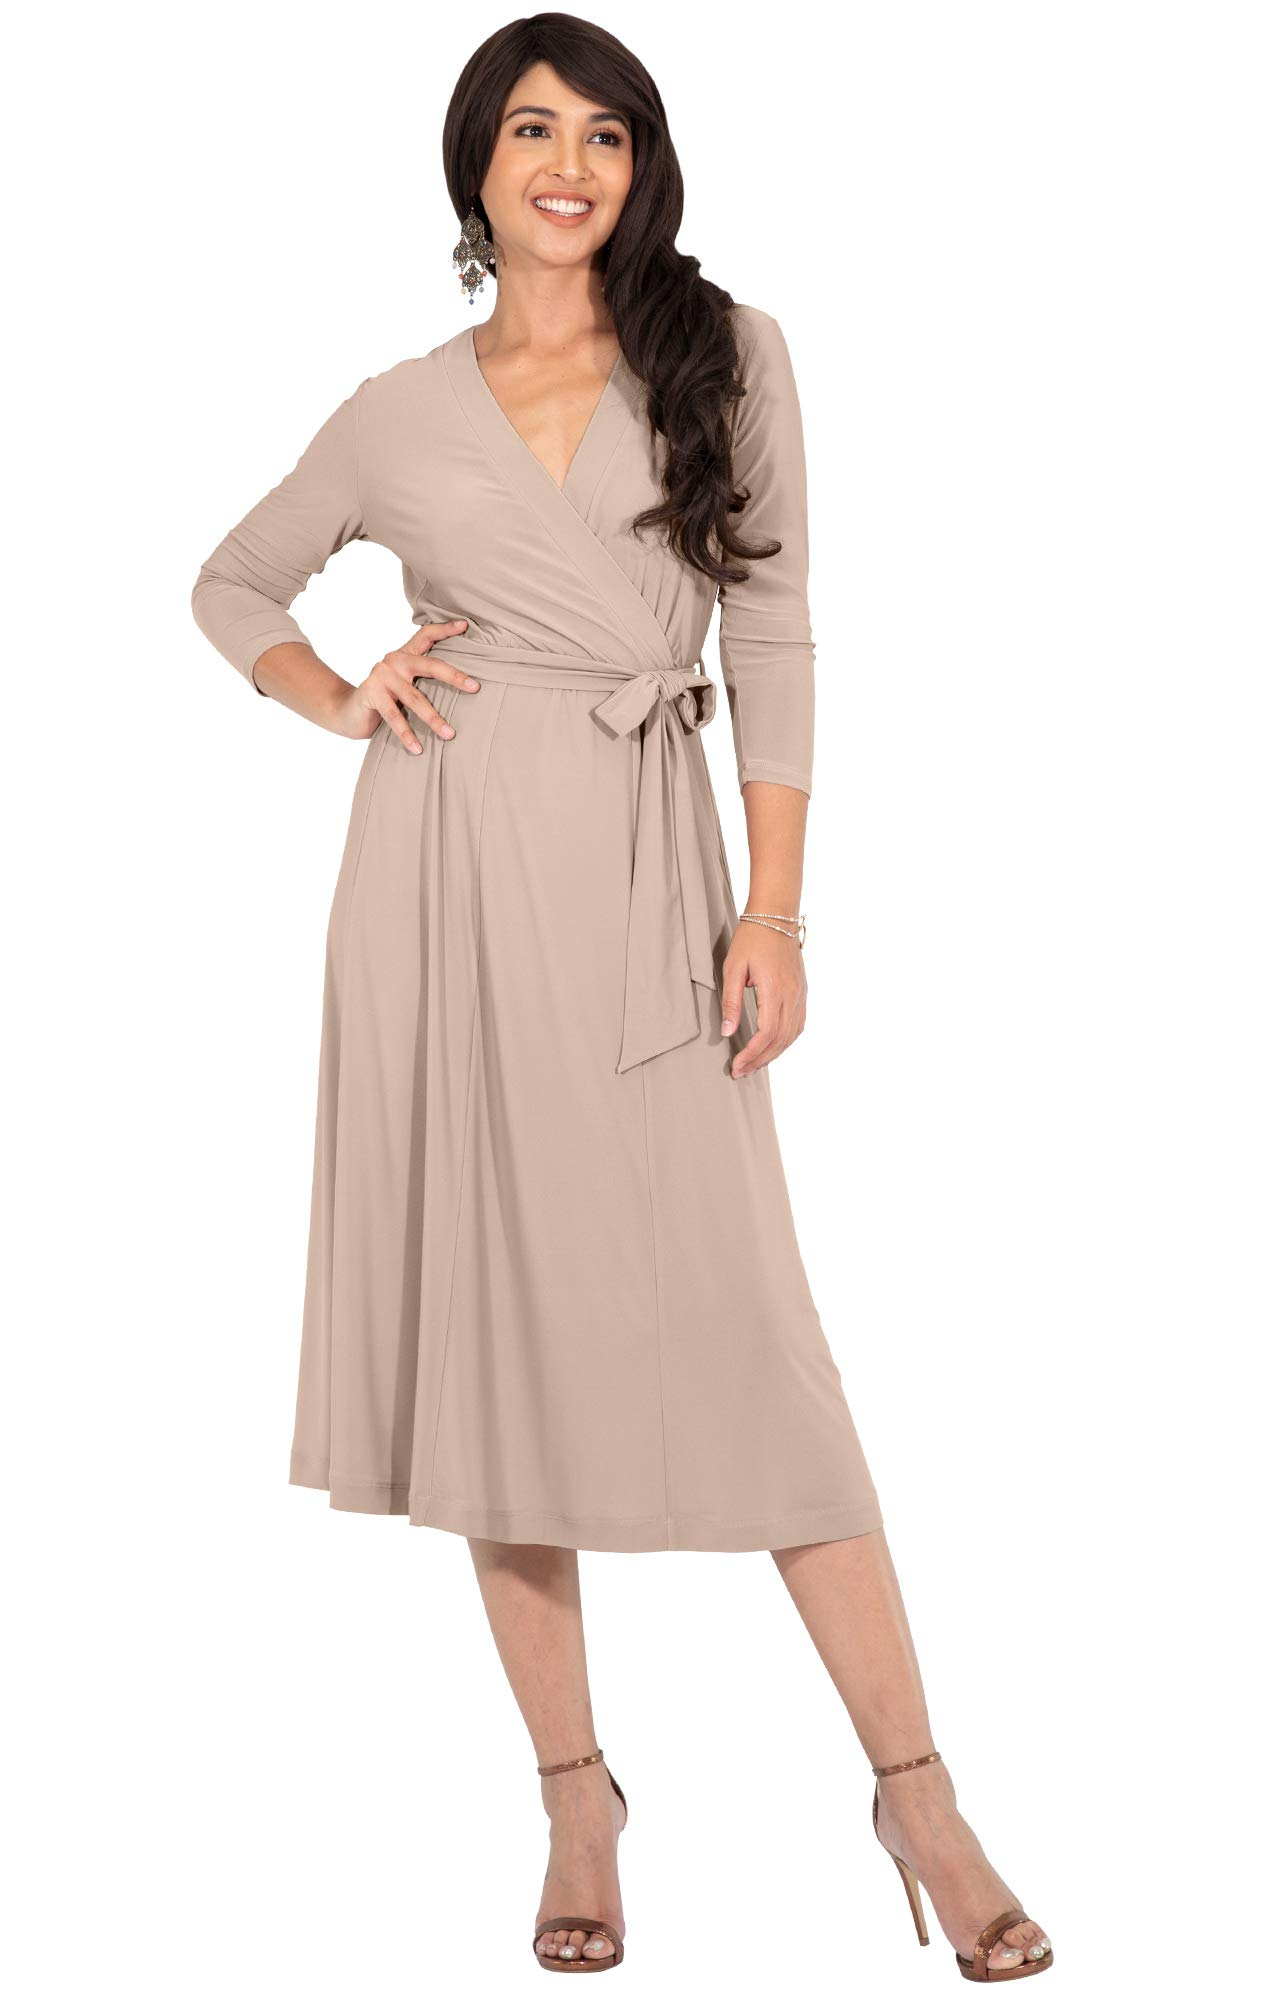 73c01808d916 KOH KOH Plus Size Womens V-Neck 3/4 Long Sleeve Flowy Knee Length Fall Bow  Wrap Modest Casual Simple Plain Loose Swing A-line Sun Day Work Office Midi  Dress ...